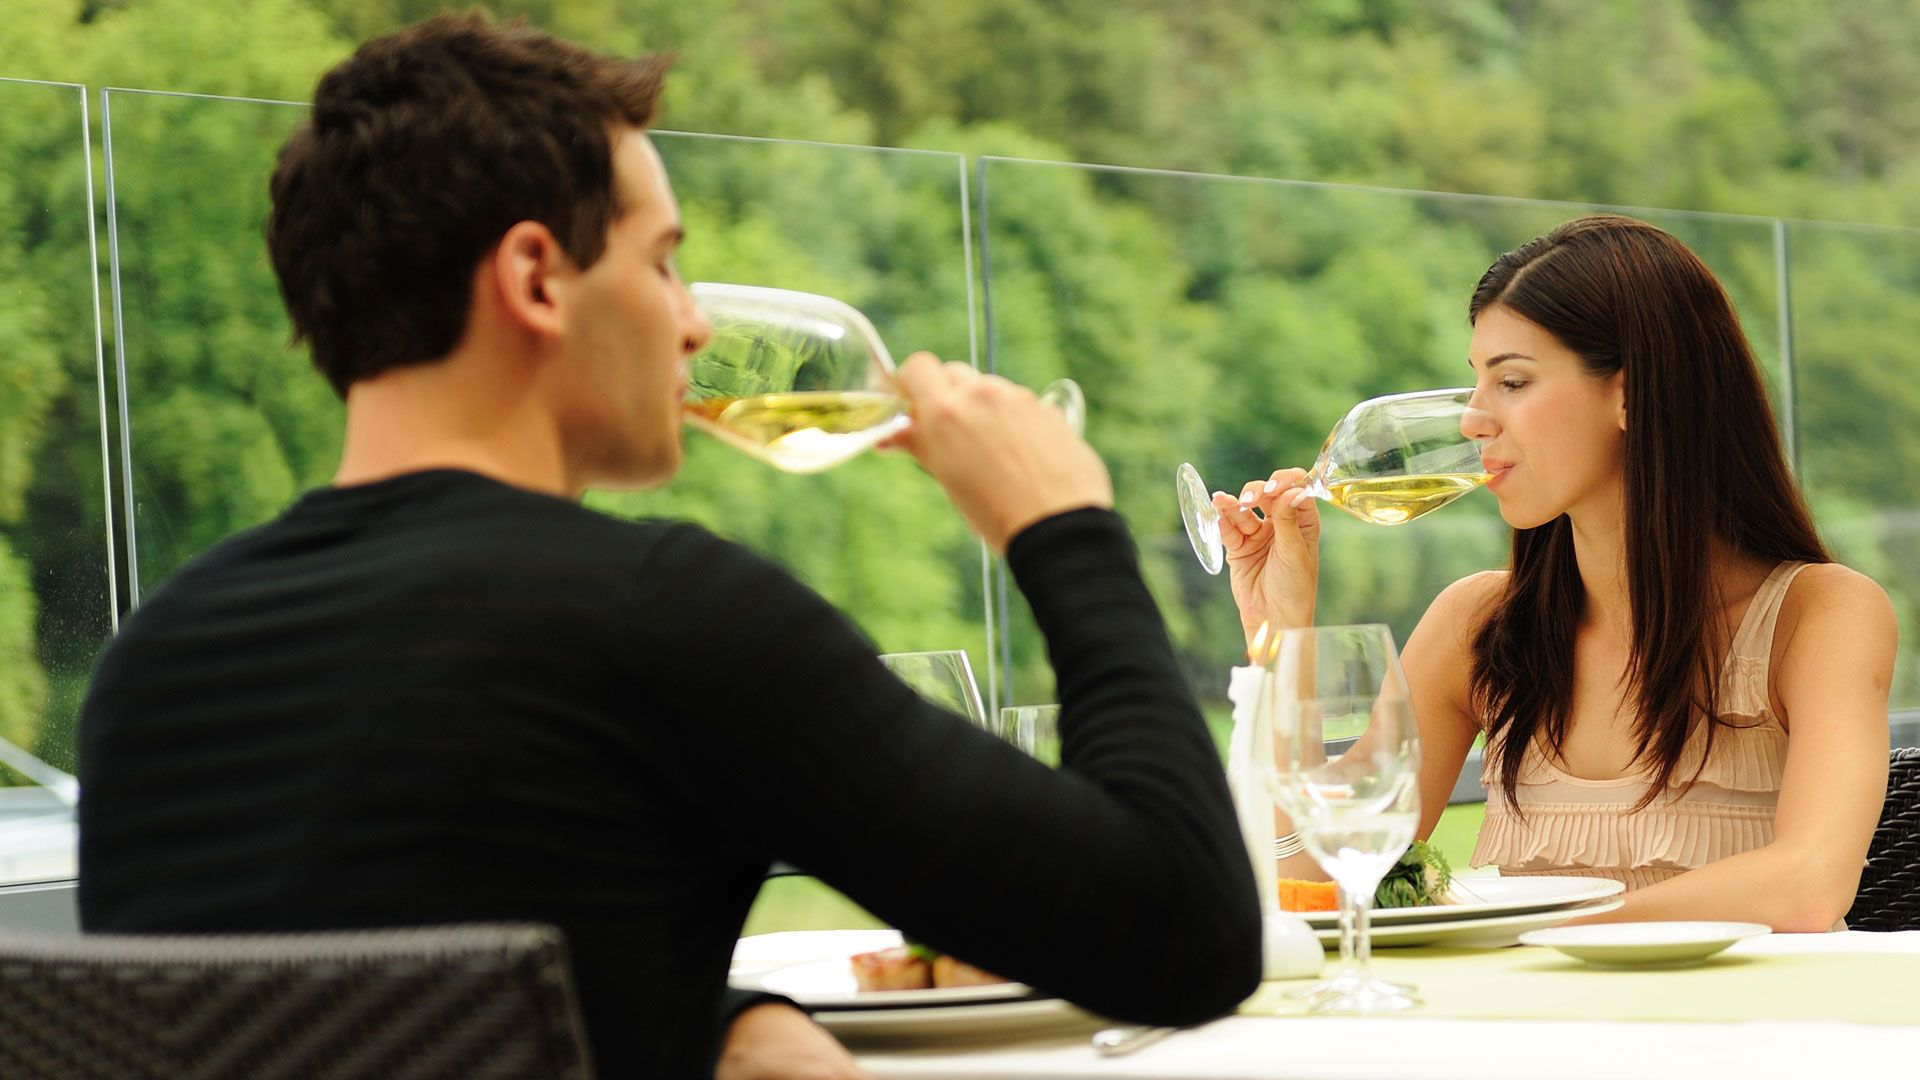 the top 100 date night ideas of all time | let's go on a date